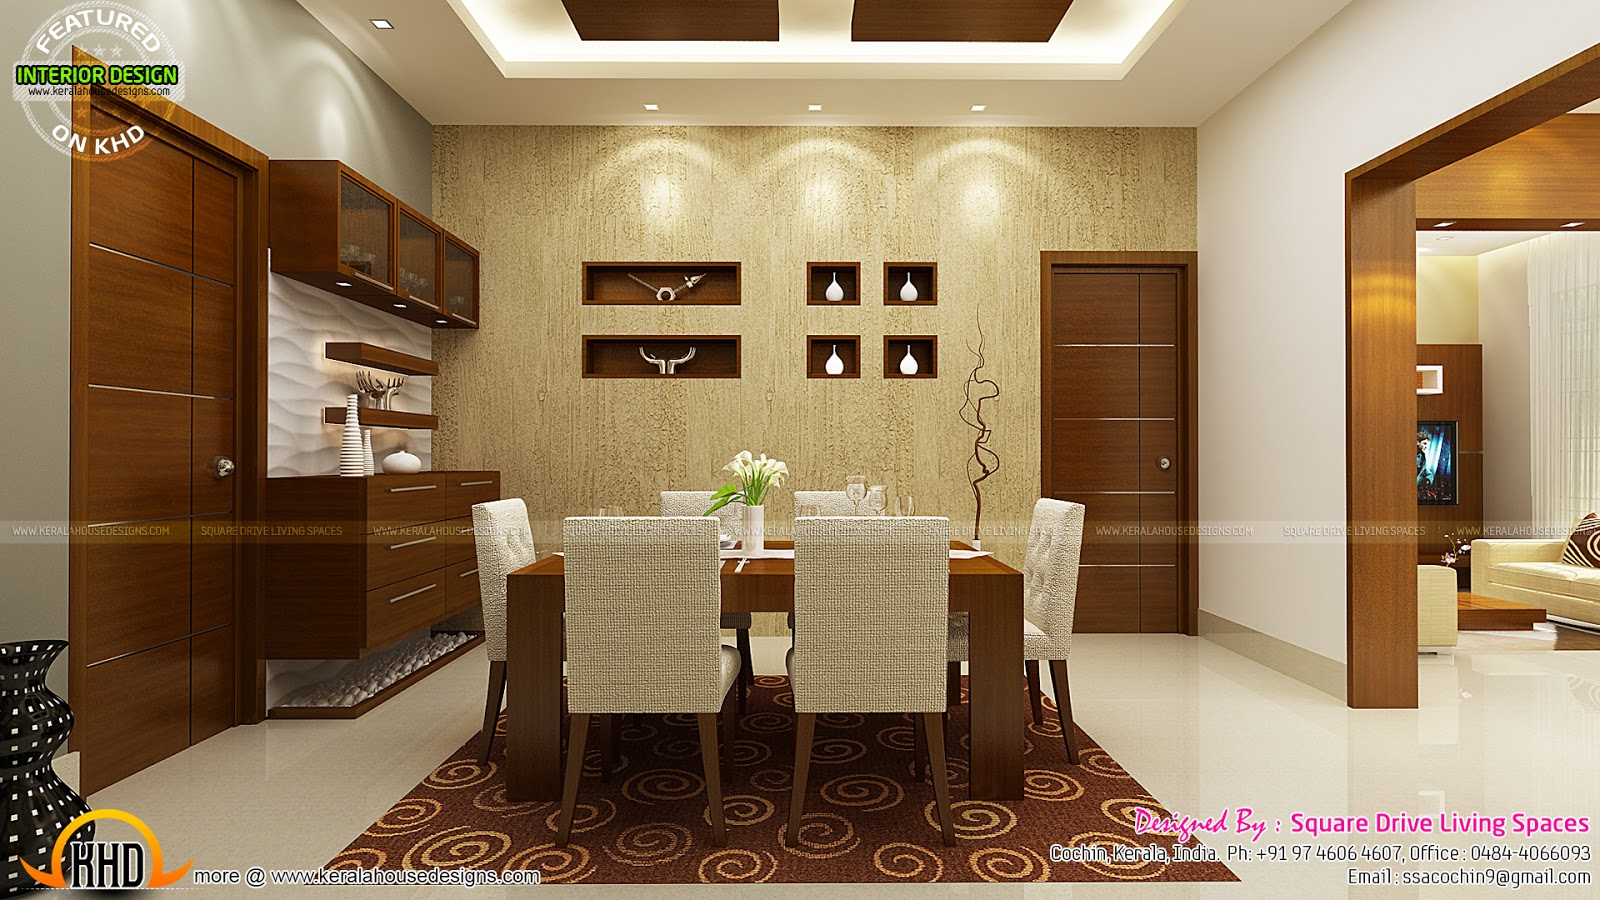 Best Kitchen Gallery: Contemporary Kitchen Dining And Living Room Kerala Home Design of Indian Home Dining Room Design on rachelxblog.com